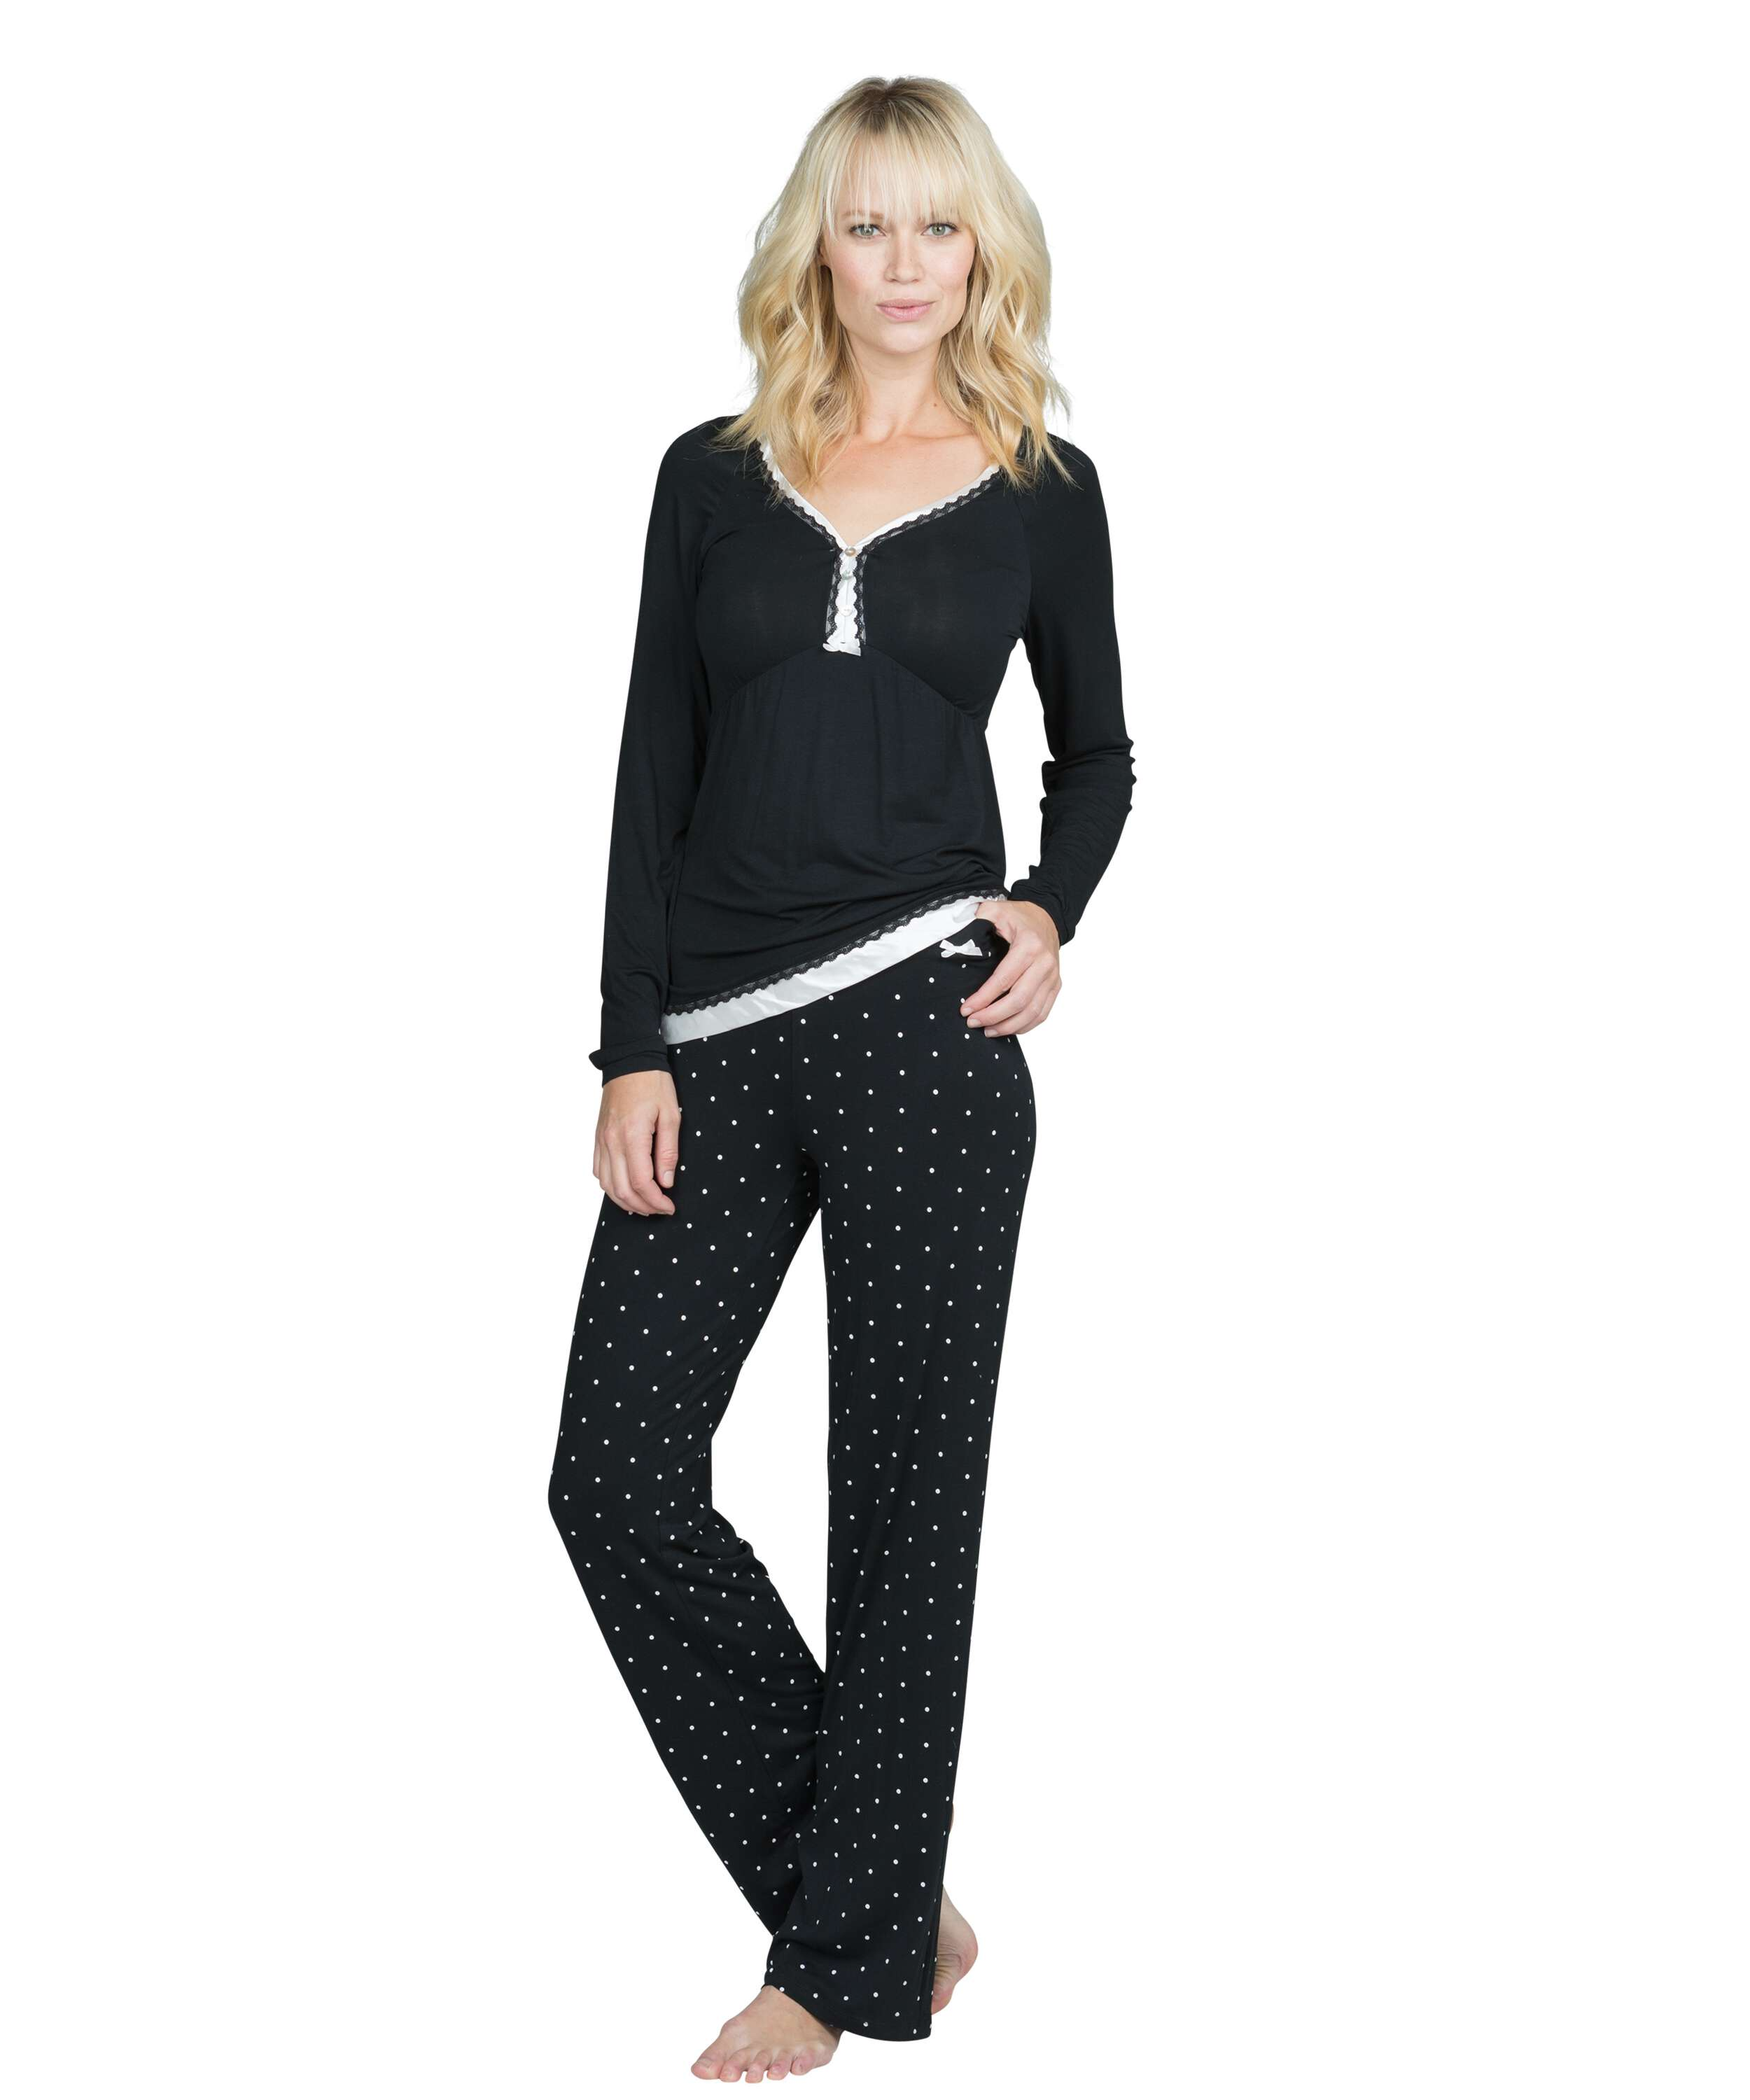 Pyjama set Pam, Black, main